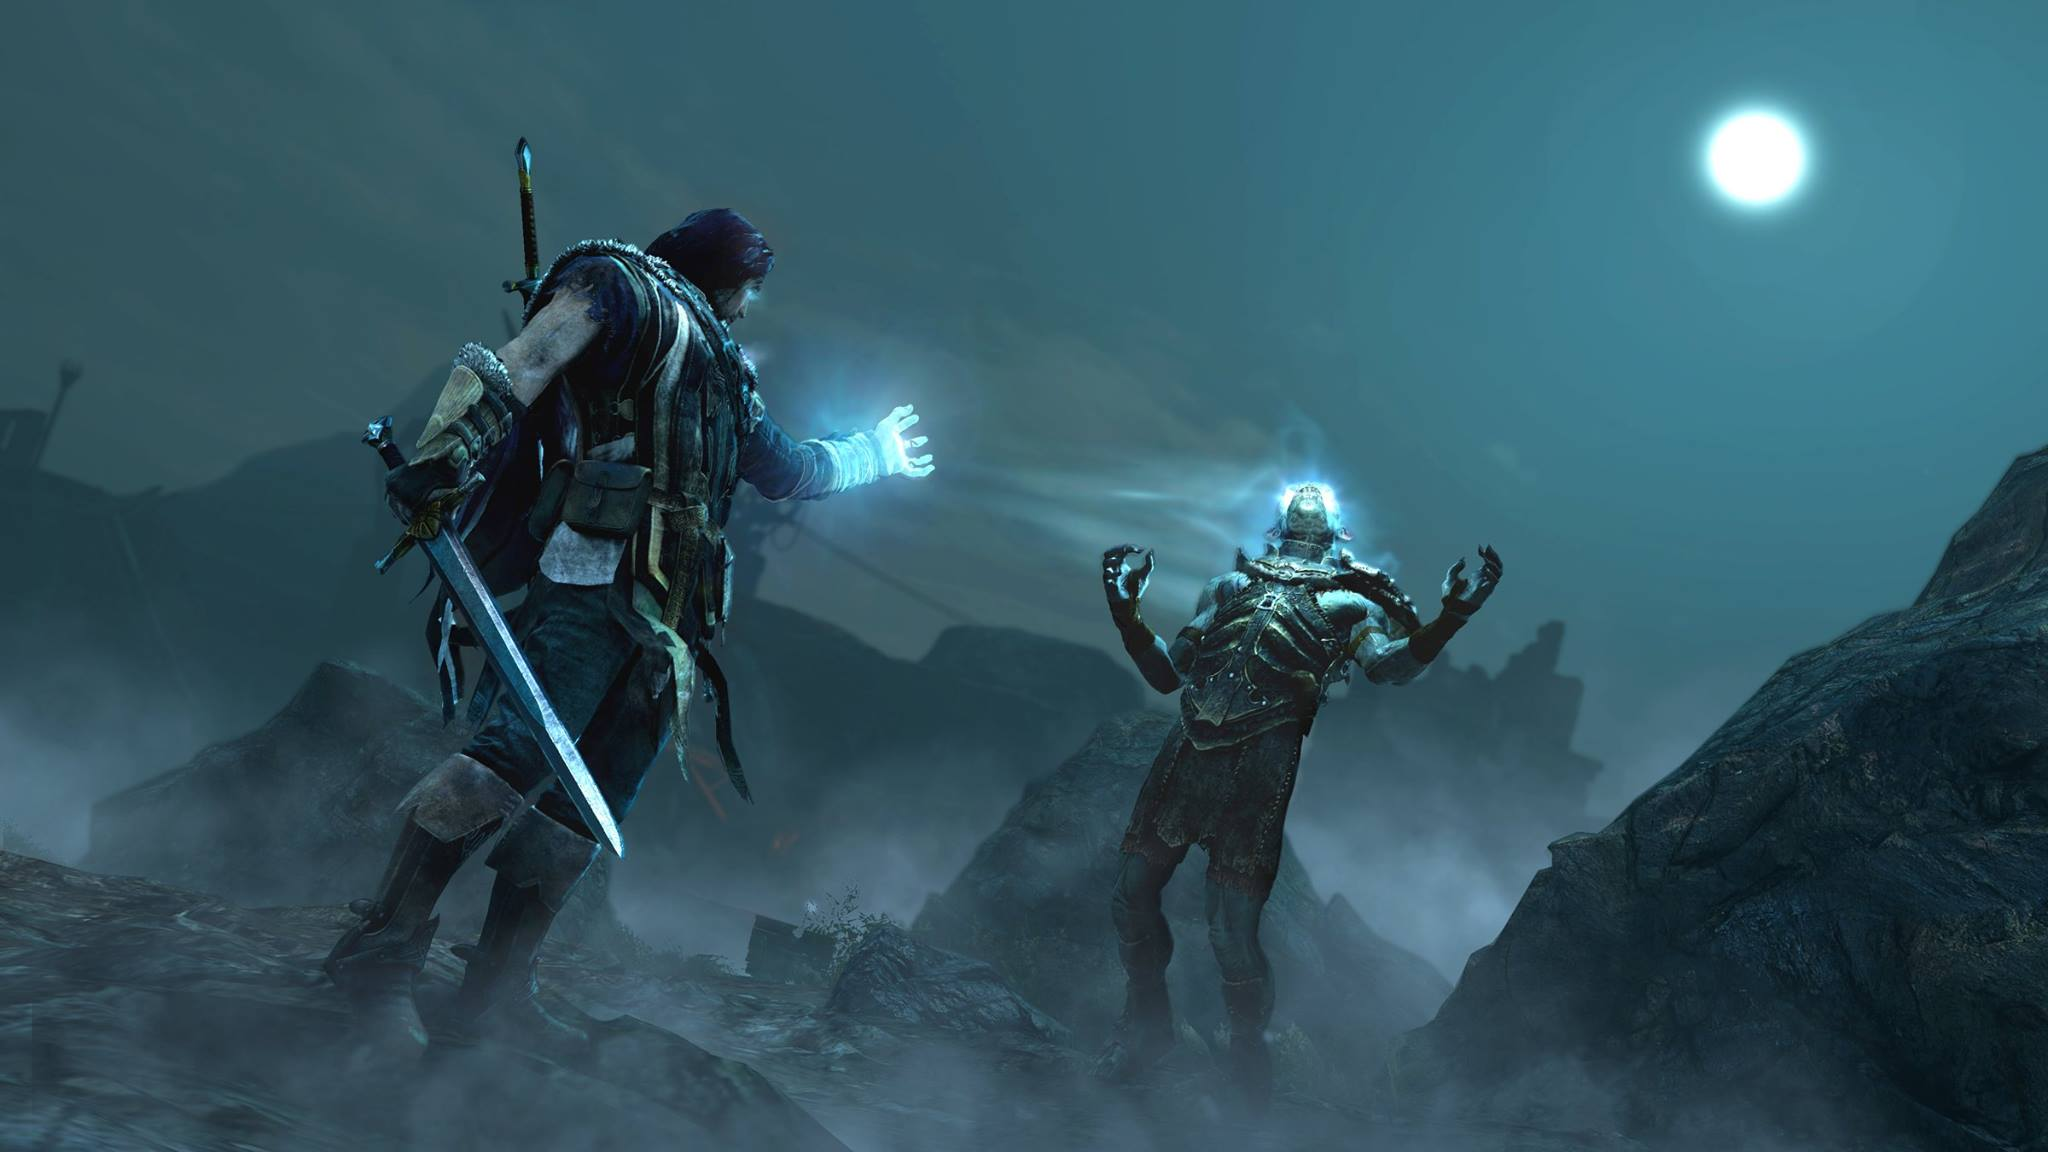 25 shadow of mordor hd wallpapers mytechshout blogging